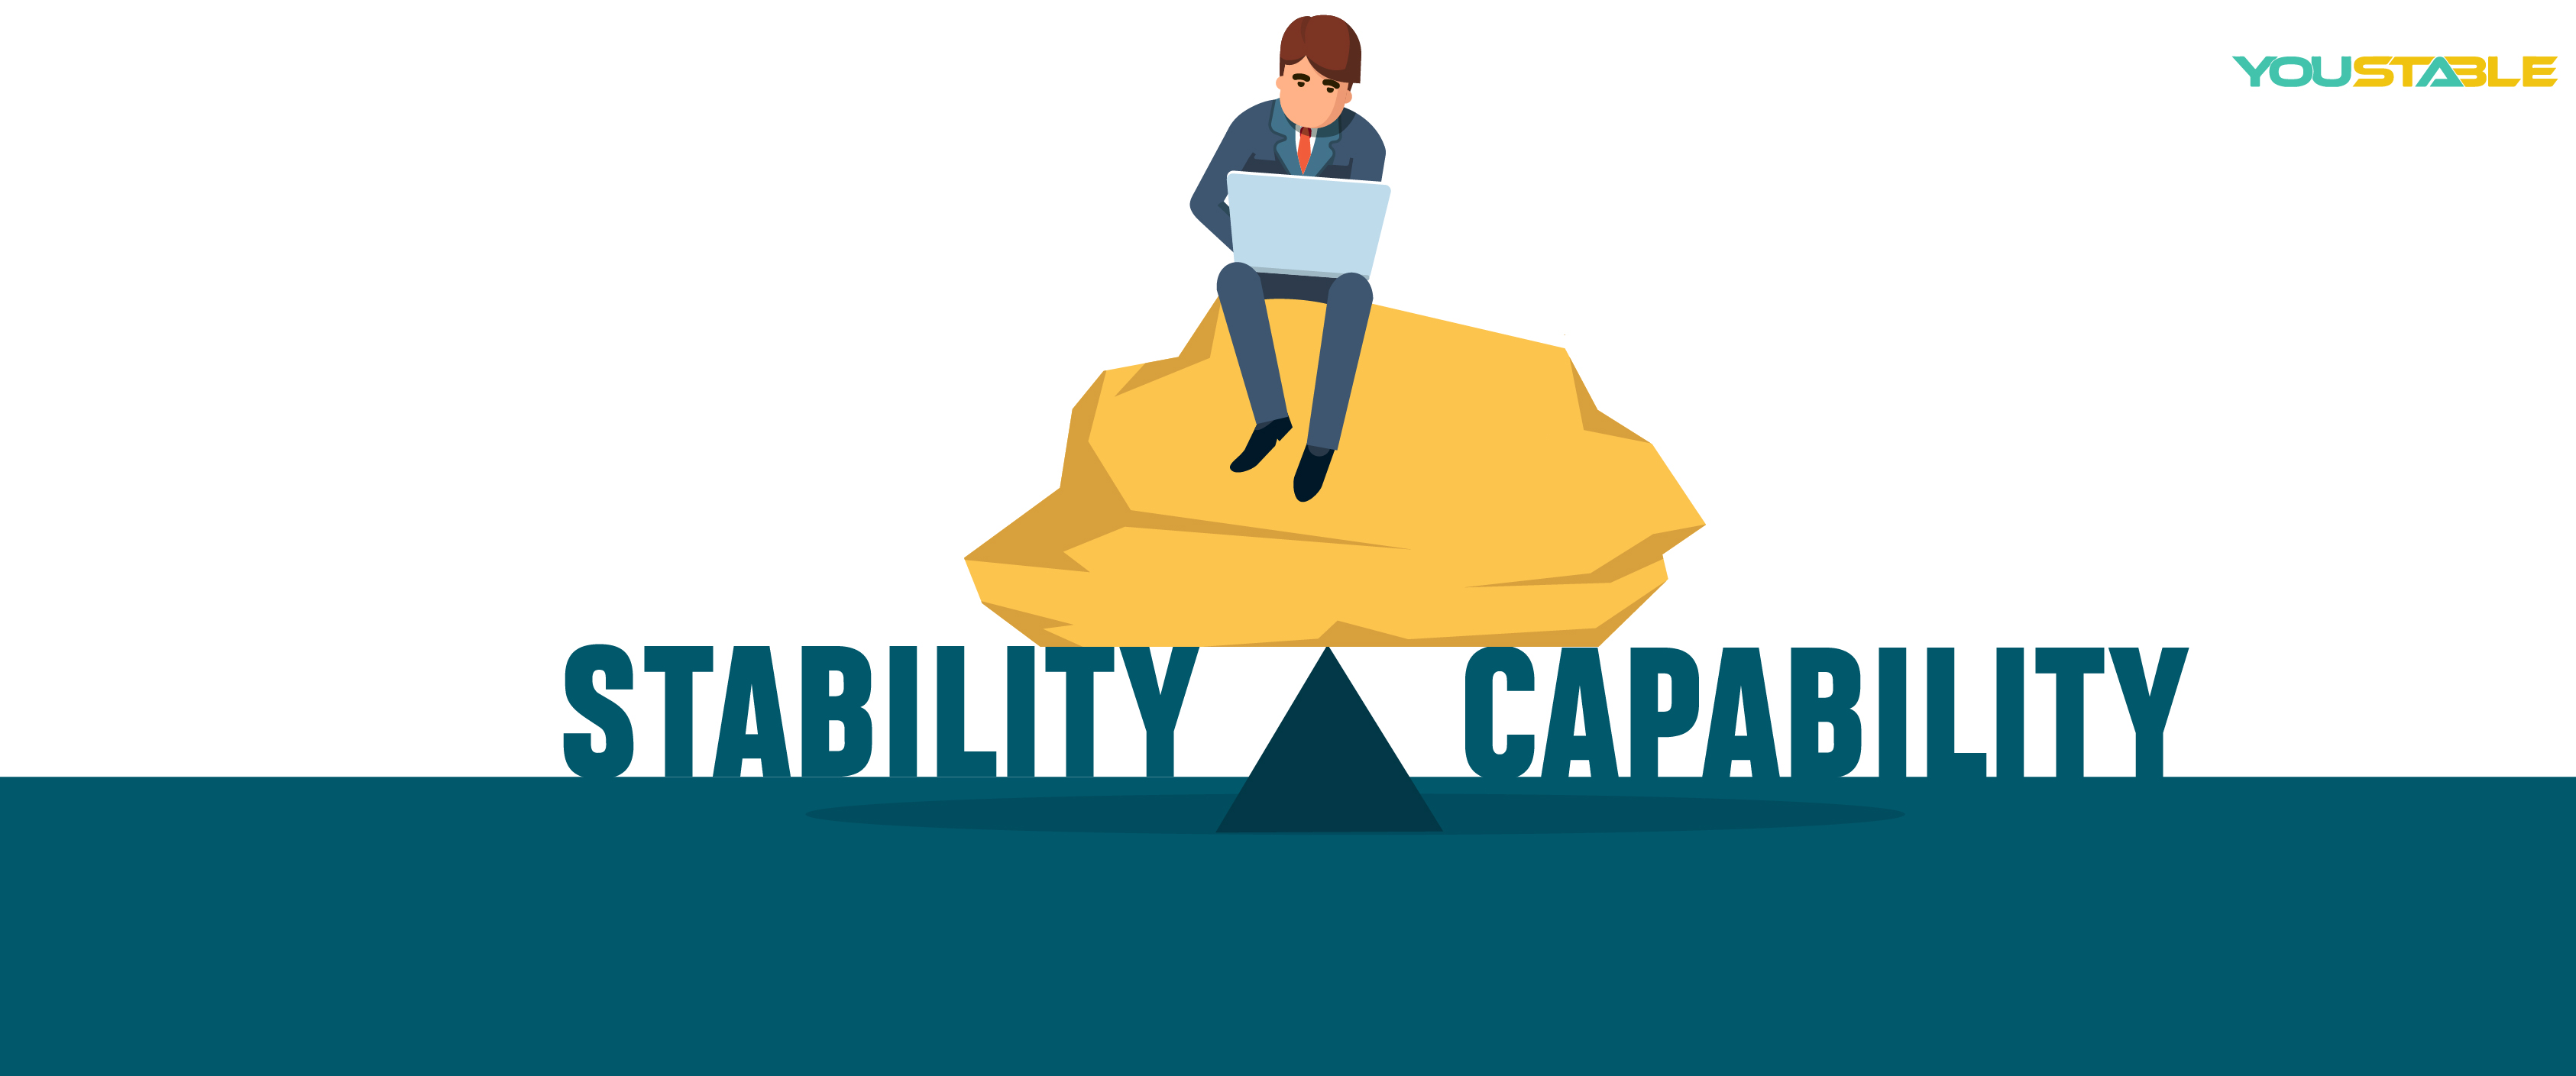 Stability and capability